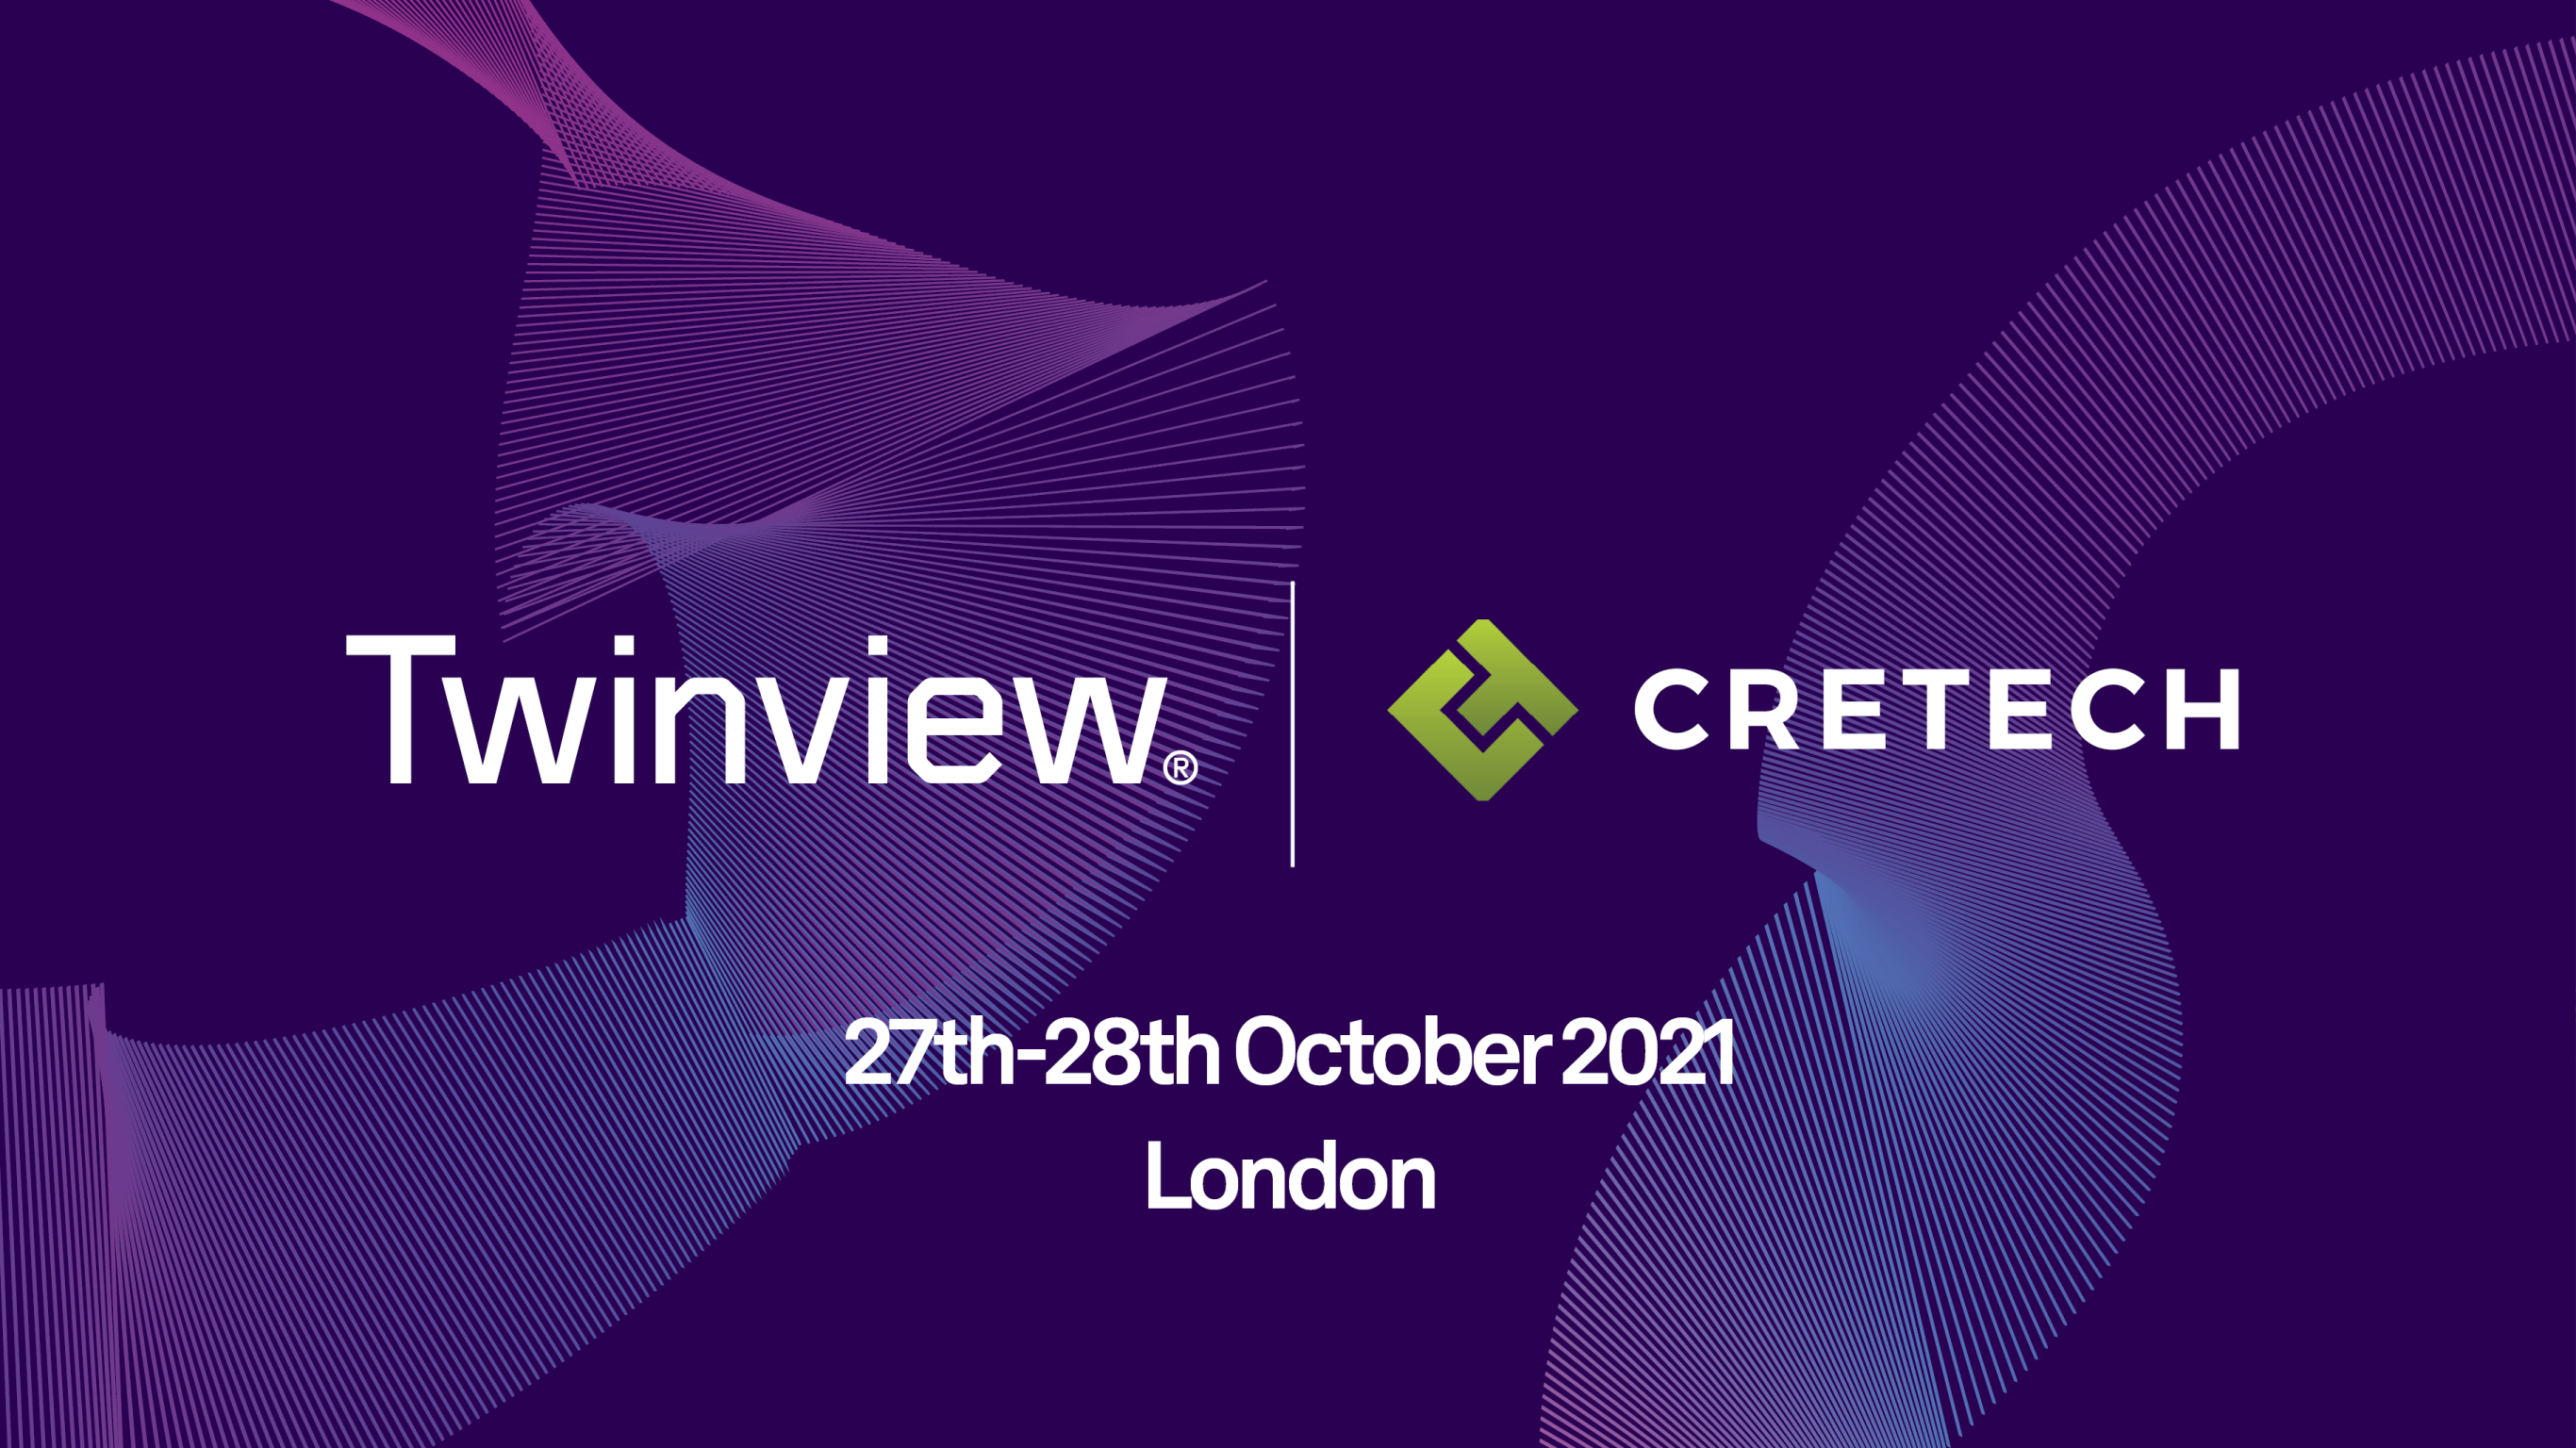 Twinview exhibiting at CRETech in London